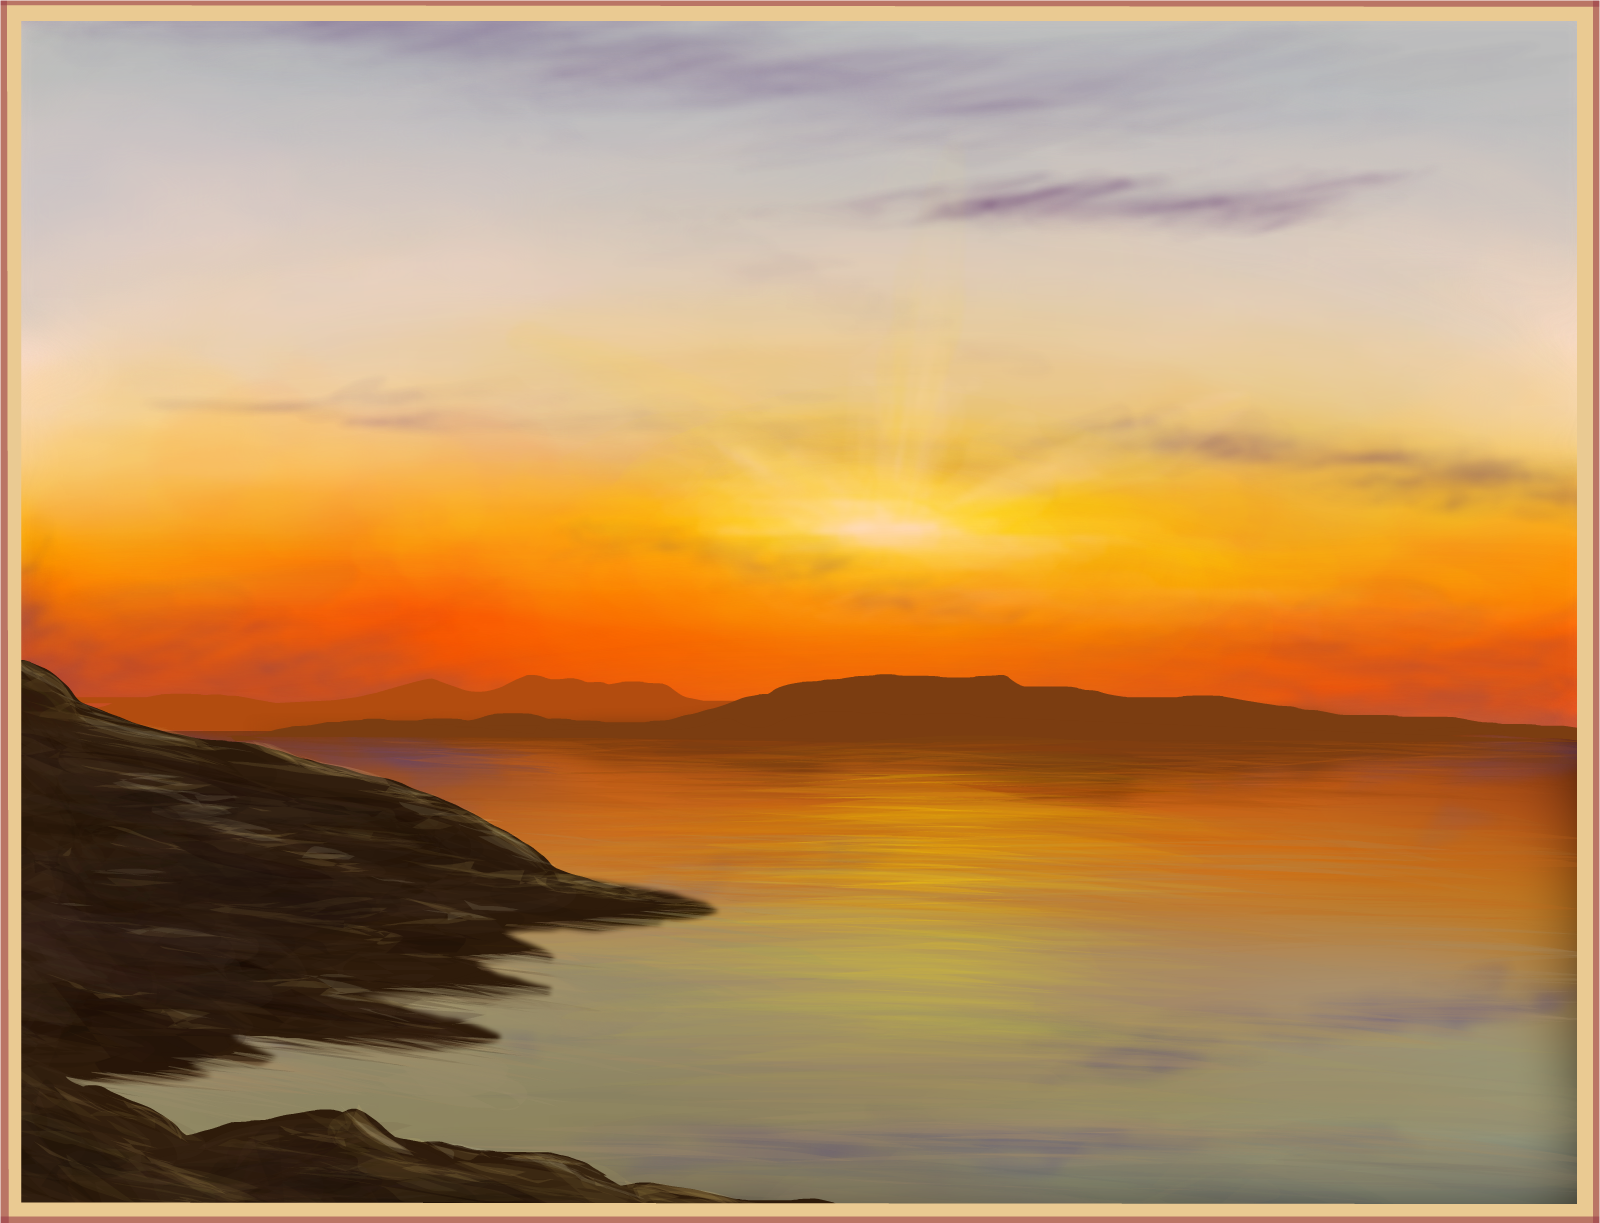 Drawn sunrise Or sunrise SketchPort drawings sunset?